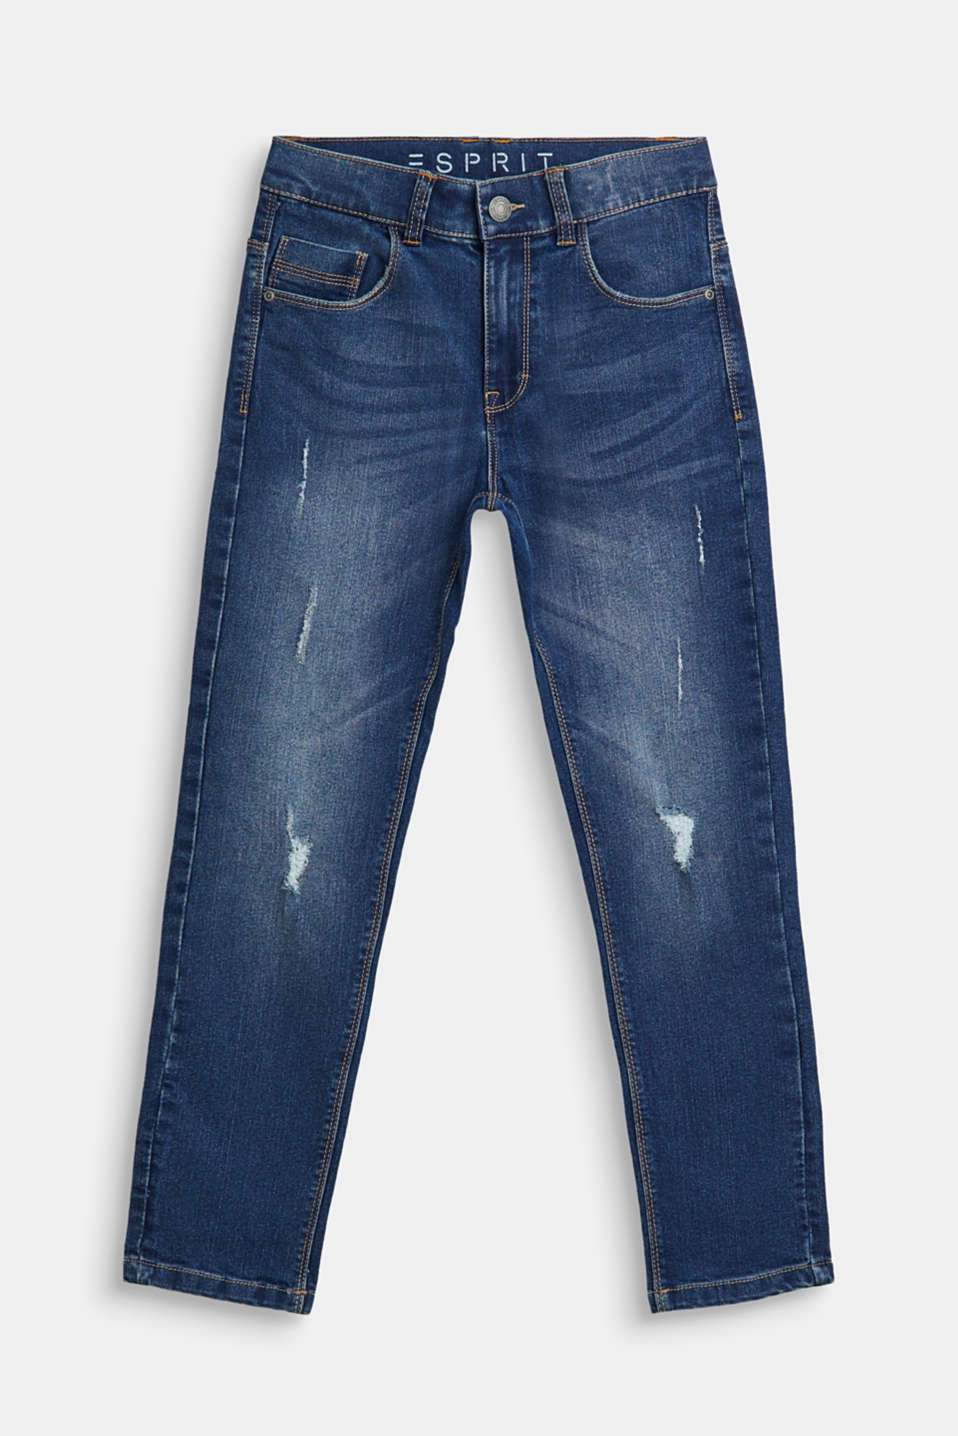 Esprit - Stretchjeans met used look